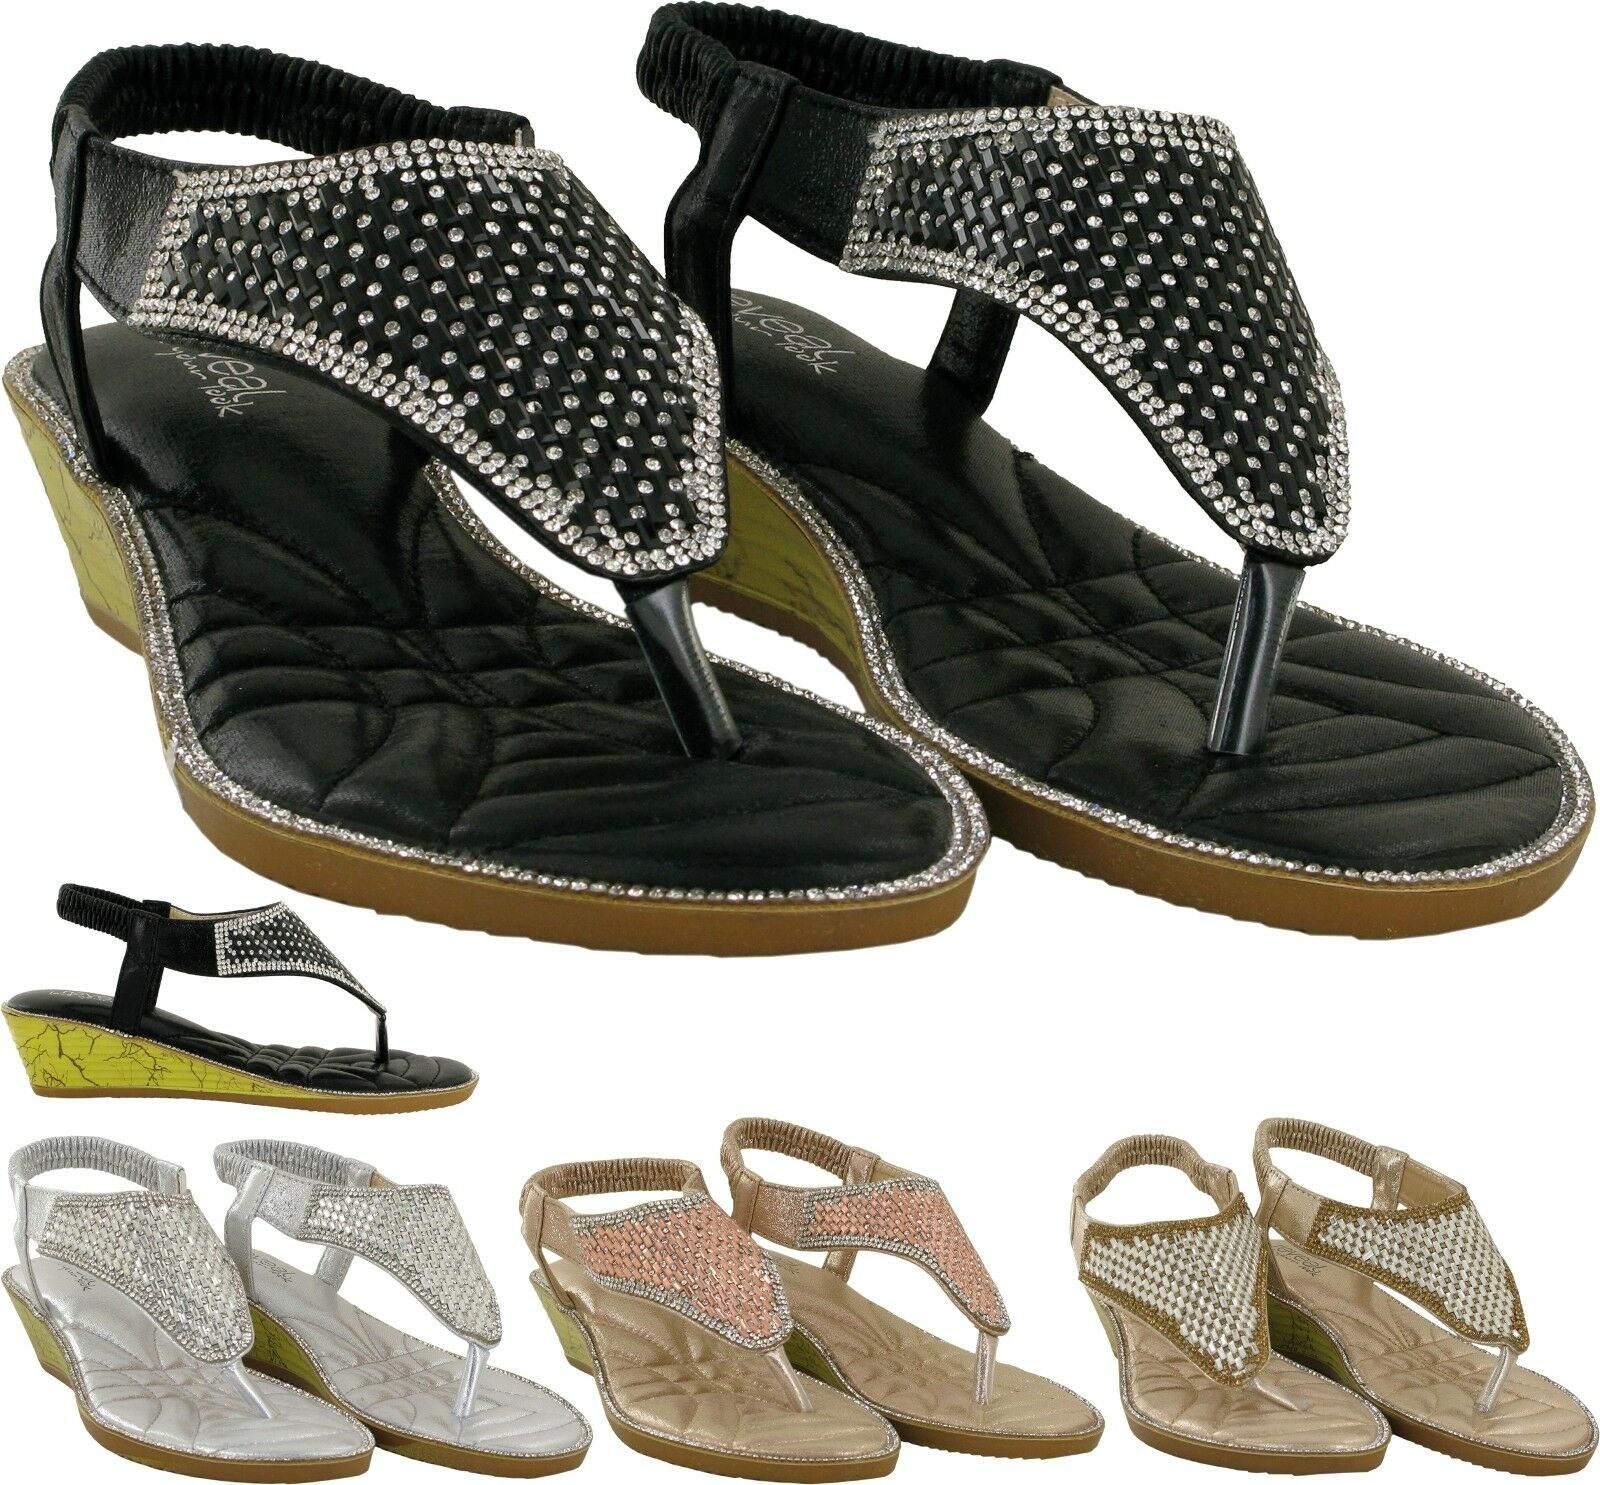 WOMEN LOW POST WEDGE HEEL SANDAL TOE POST LOW LADIES ELASTICATED SANDAL UK SIZES 3-8 93efbe